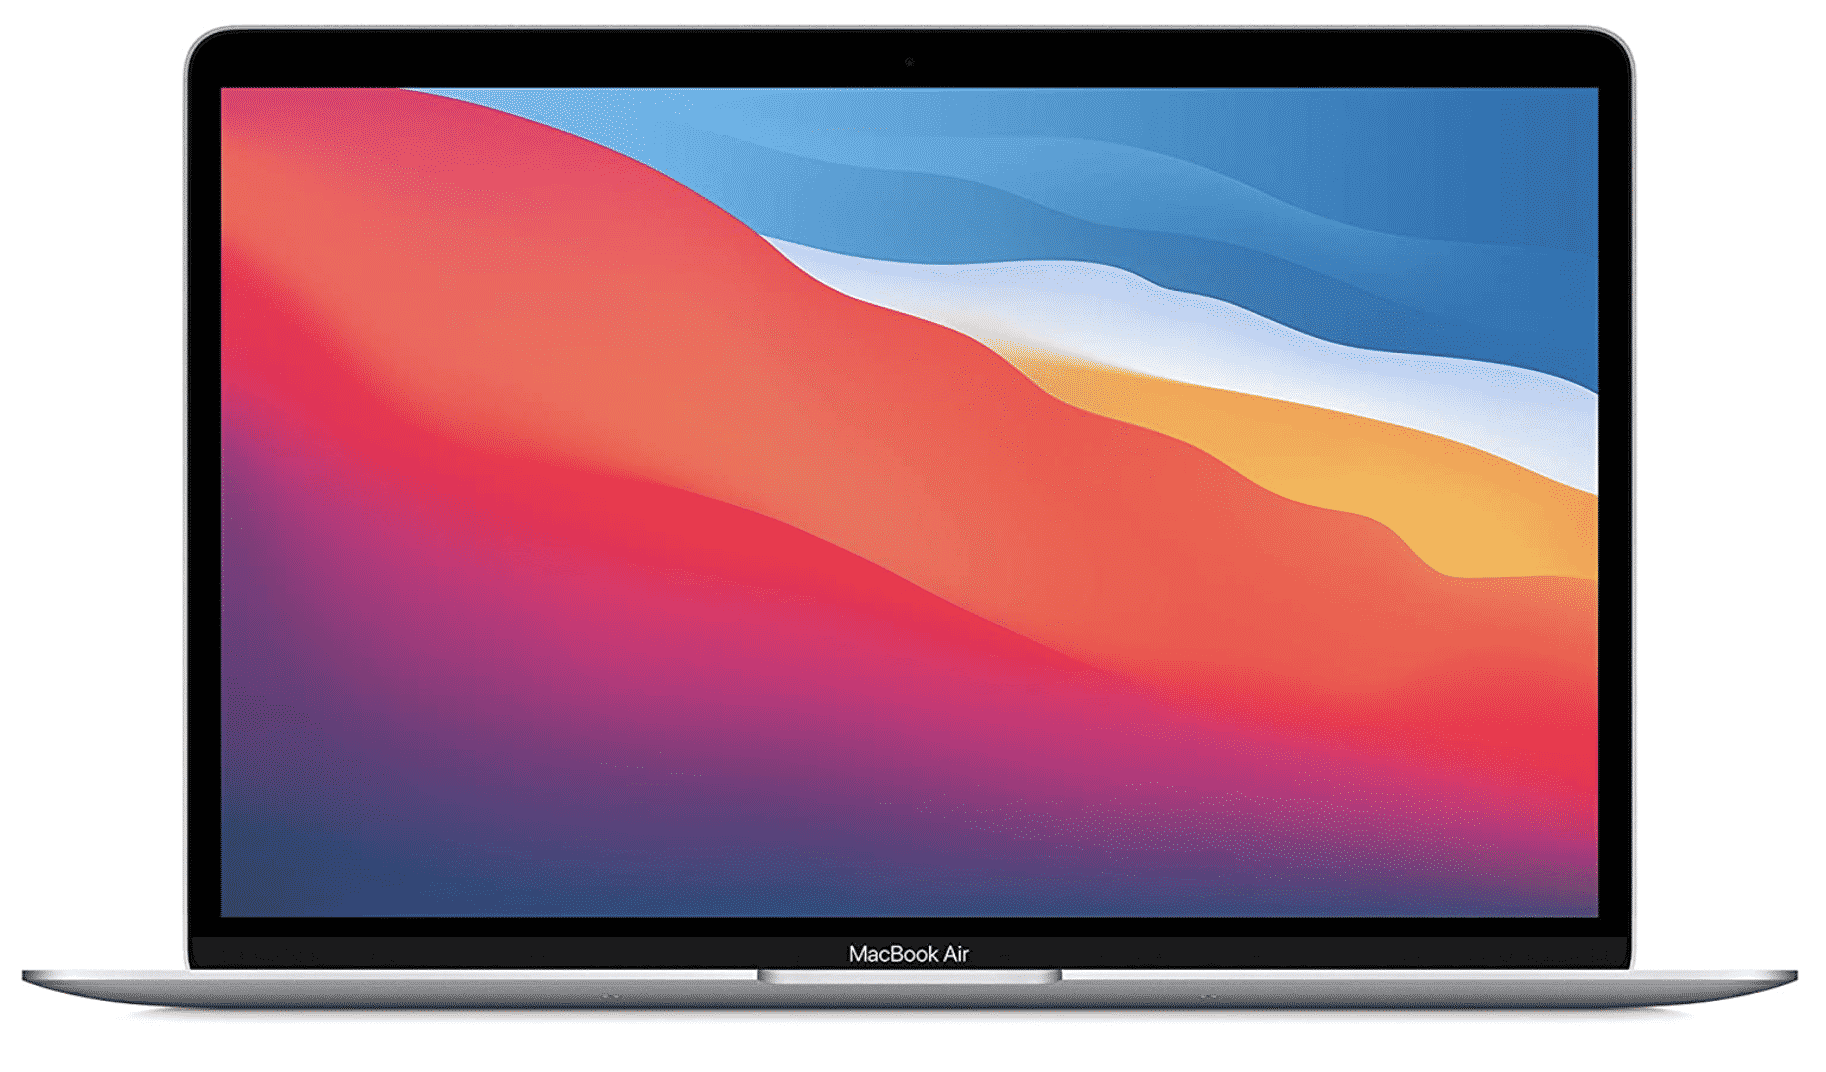 Buy the New 13-inch M1 MacBook Air at $50 Off